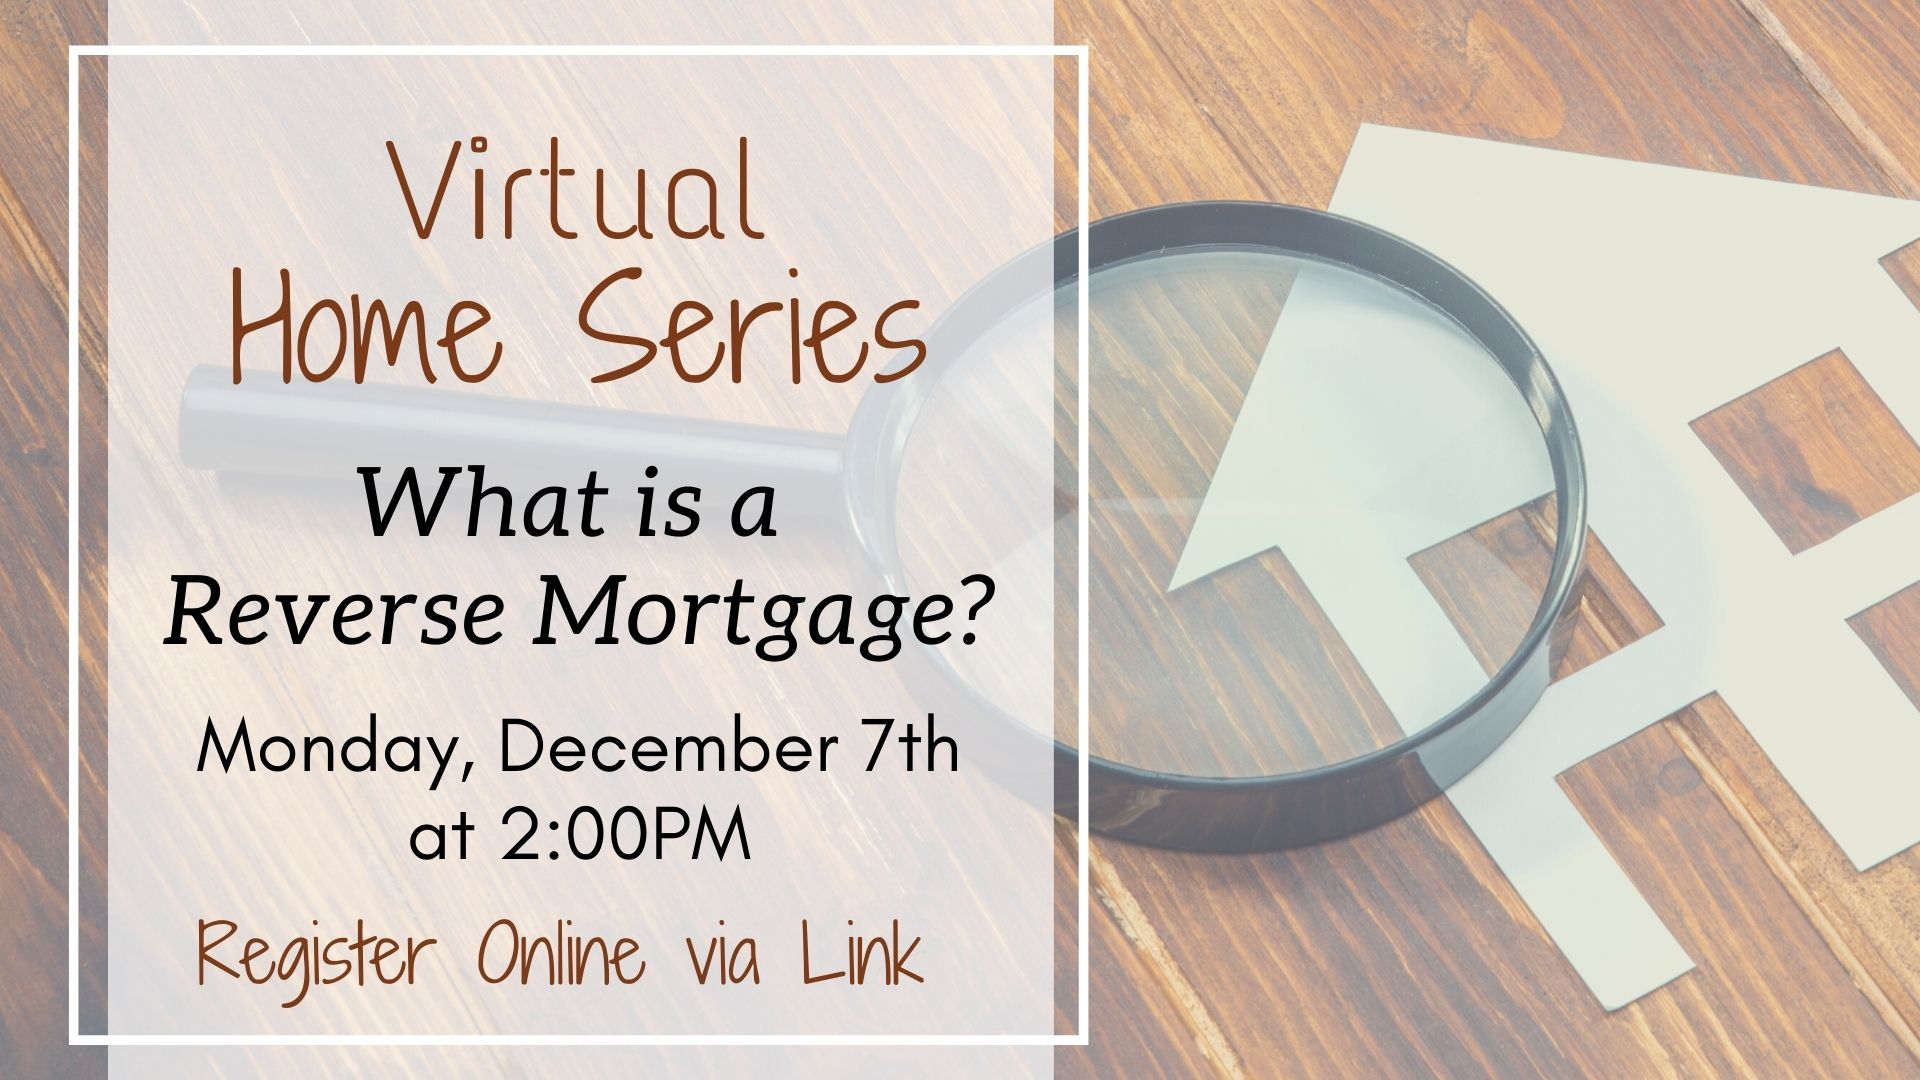 Virtual Home Series: What is a Reverse Mortgage?